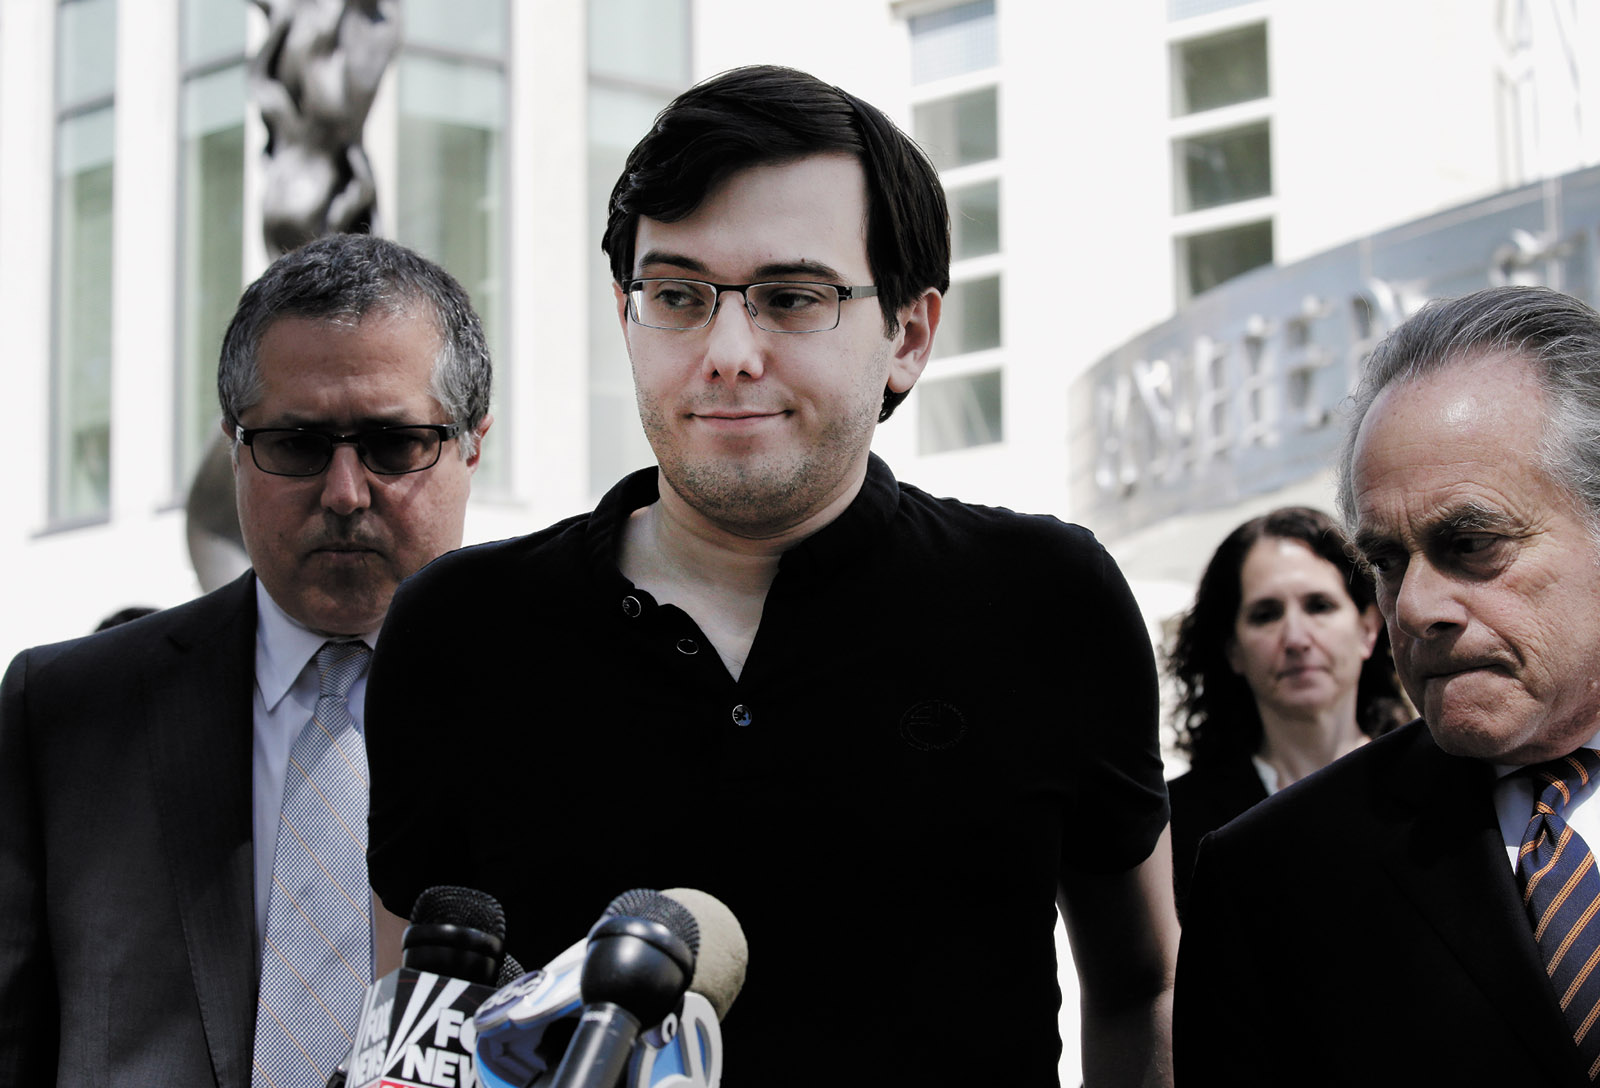 Martin Shkreli, the former head of Turing Pharmaceuticals, outside the federal courthouse in Brooklyn after he was found guilty of fraud, August 2017